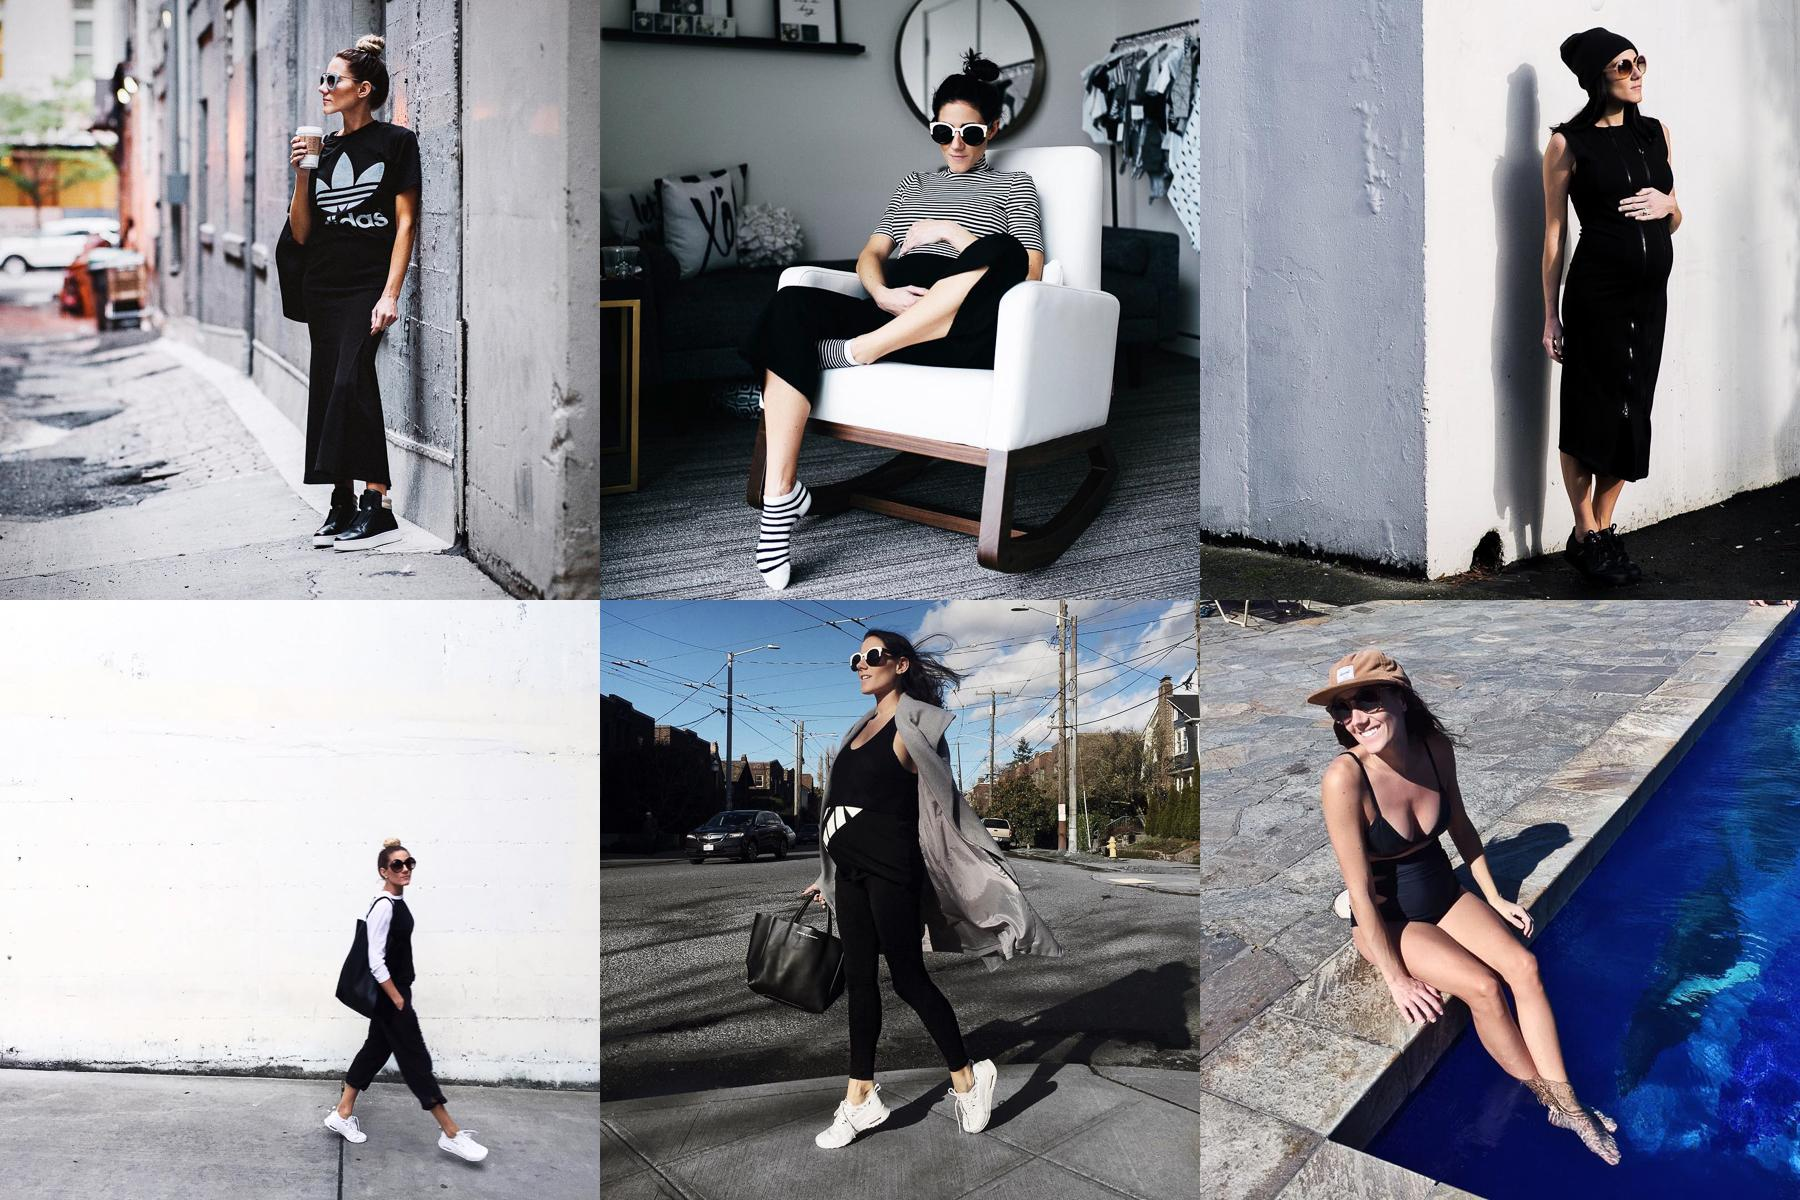 Maddie Haisch's Instagram account fits her username, @blackwhiteandbrunette, perfectly with stark black and white contrasts in all of her photos. Maddie makes fashion and comfort look easy together and recently her pregnancy fashion has been so on point. (Images courtesy of @blackwhiteandbrunette)